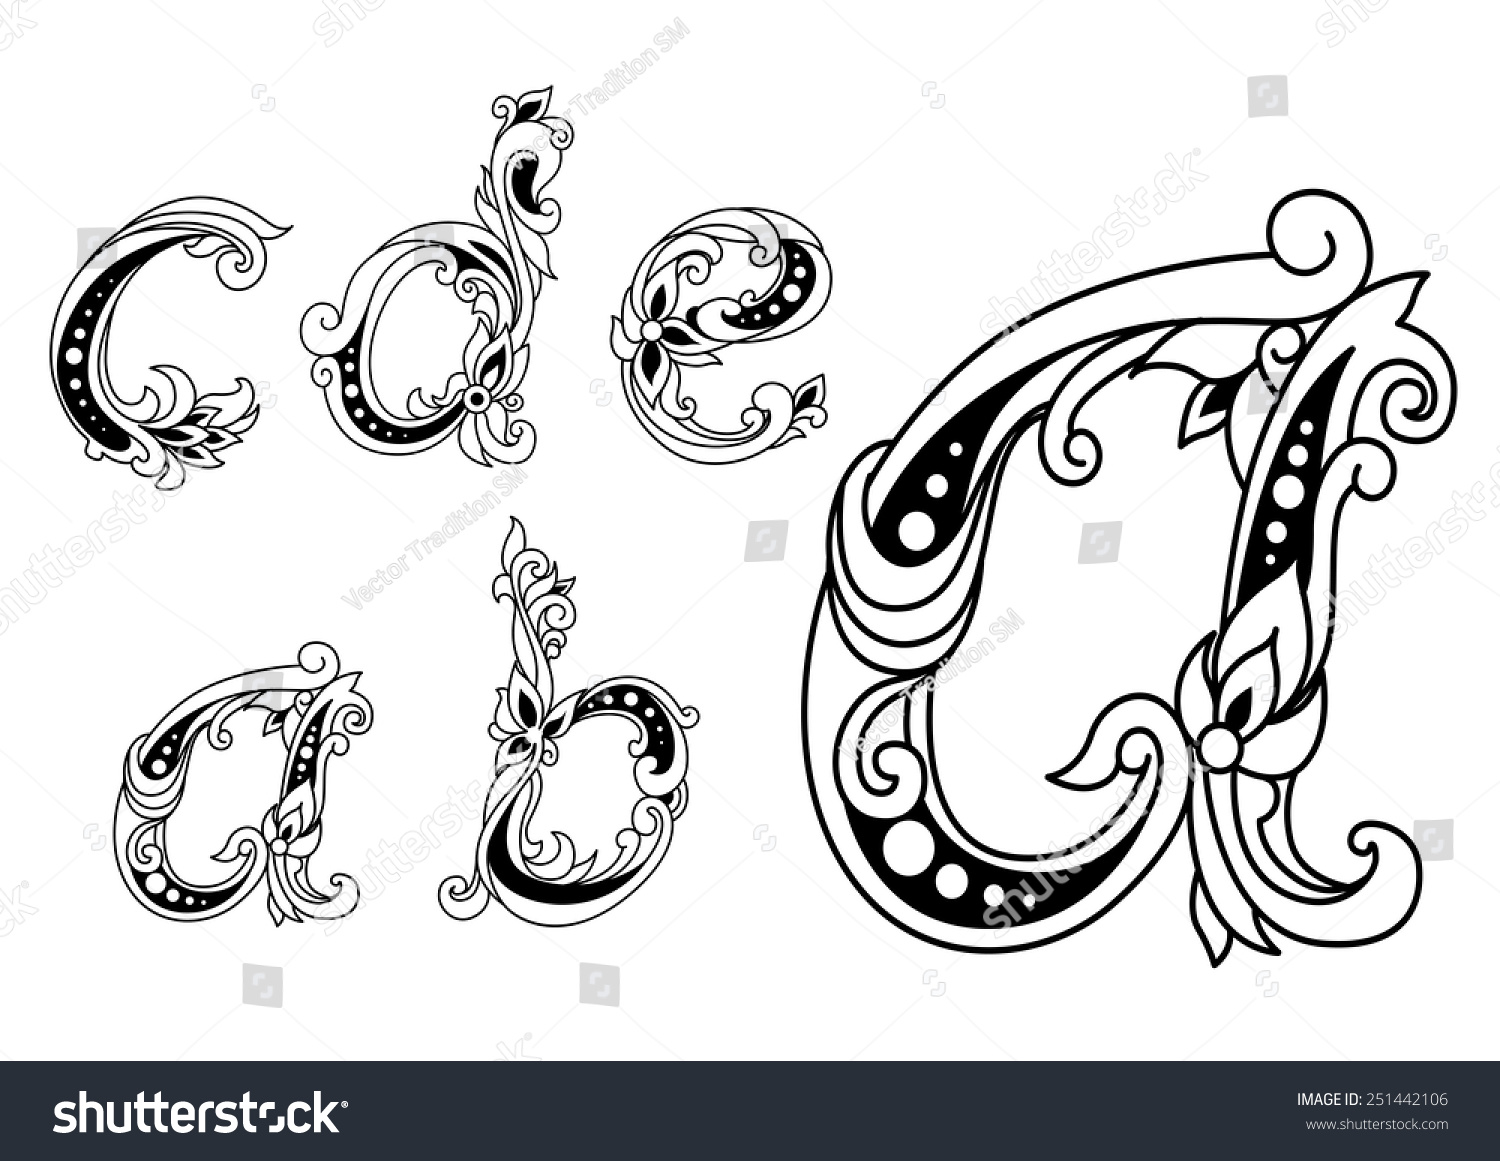 Calligraphic floral lower case alphabet letters stock